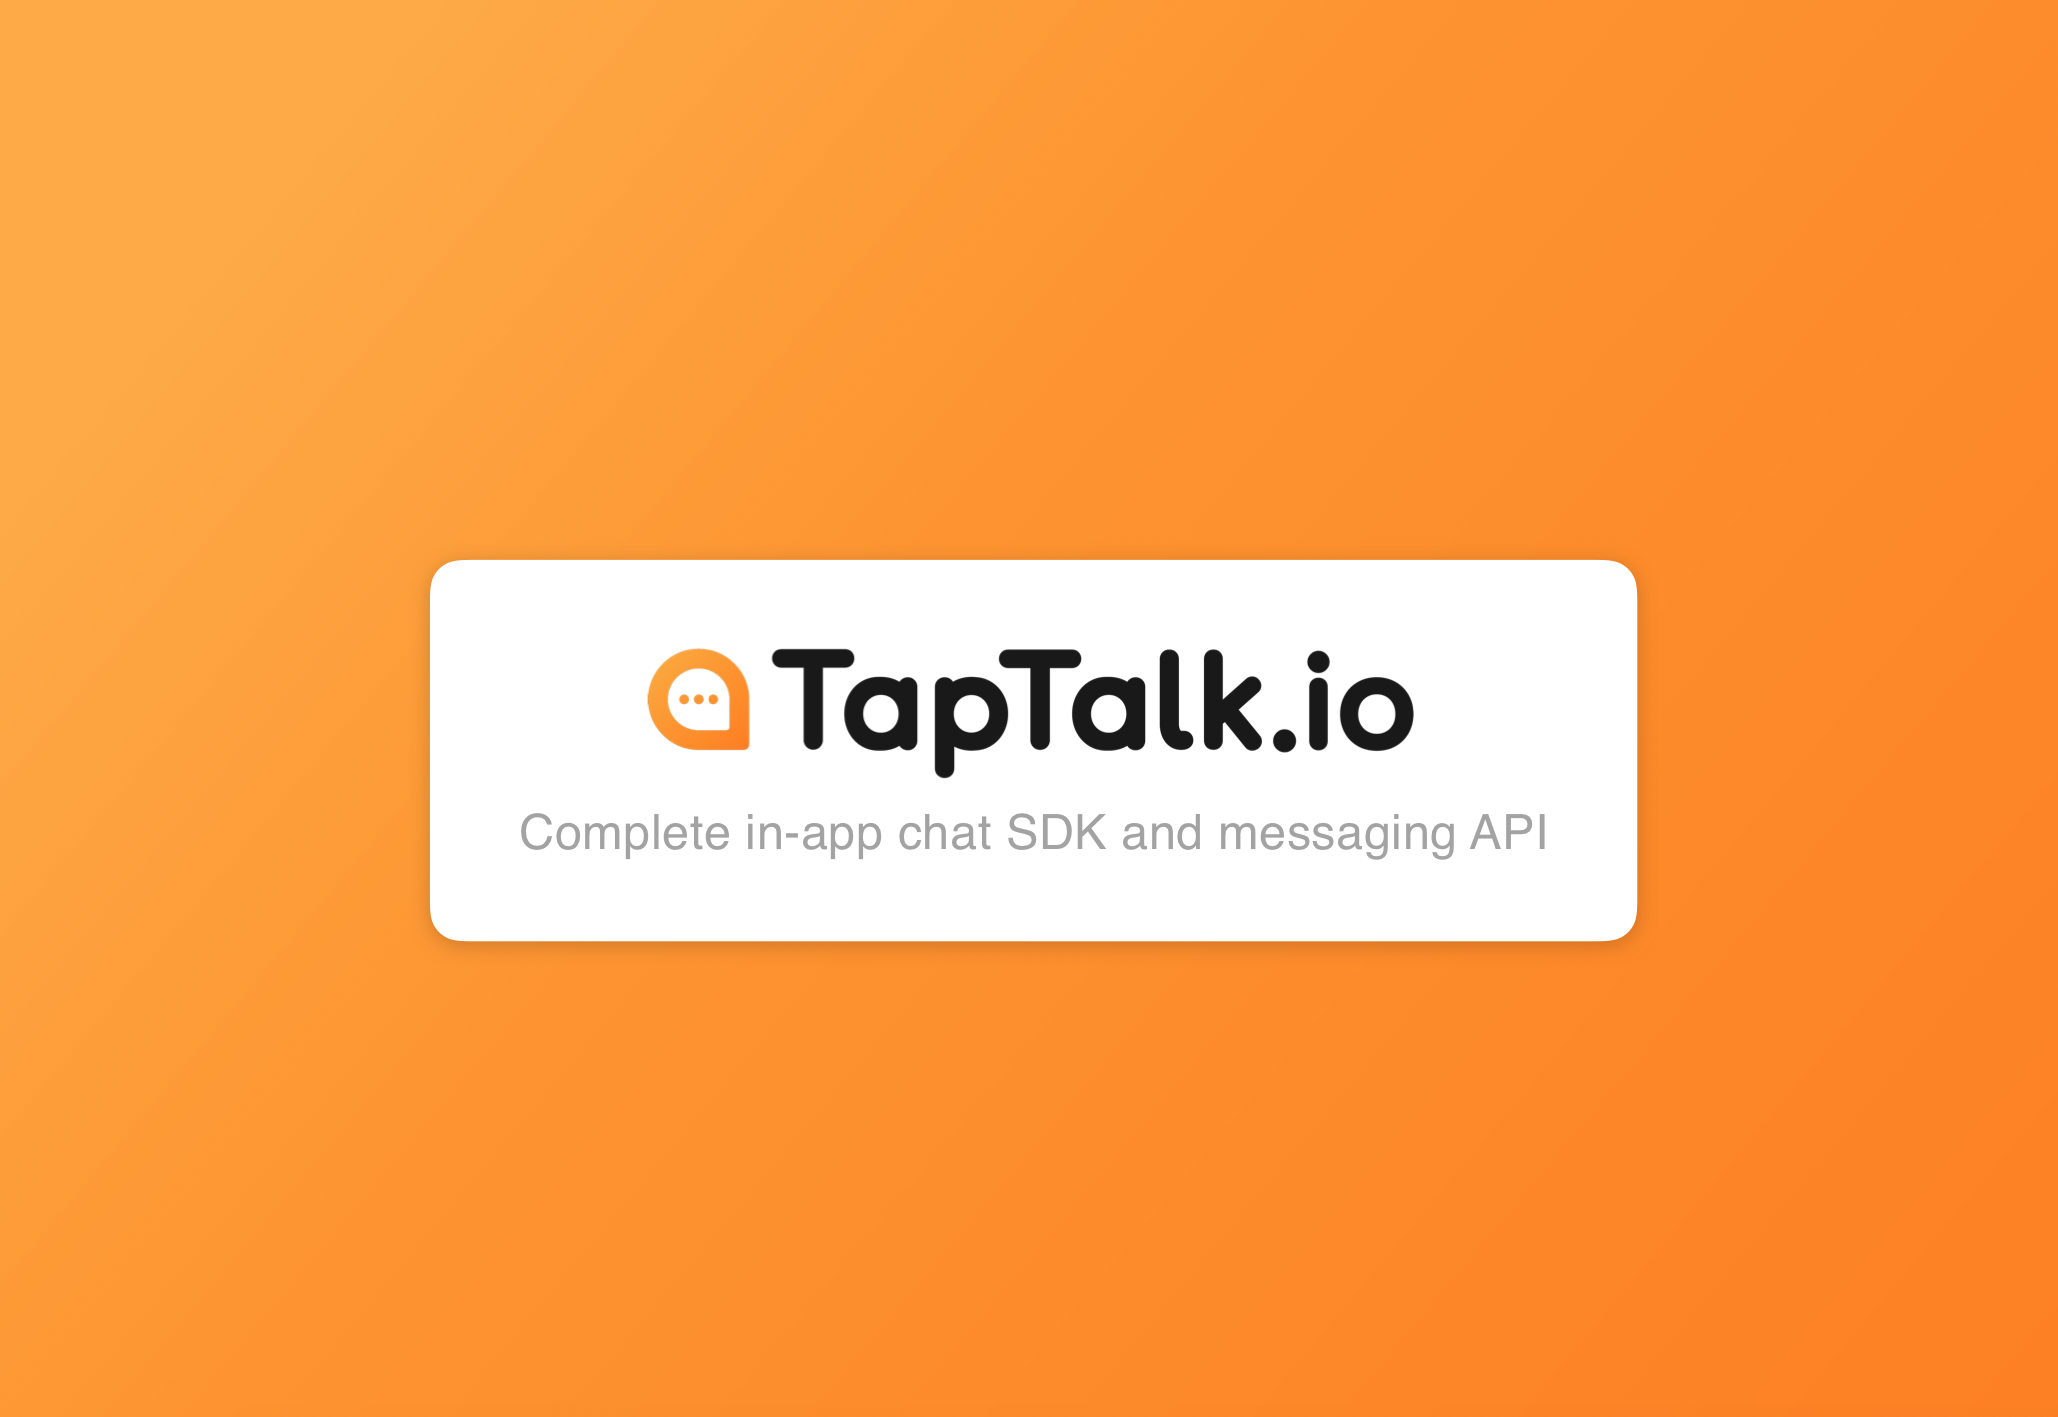 TapTalk.io, a new Chat SDK Alternative